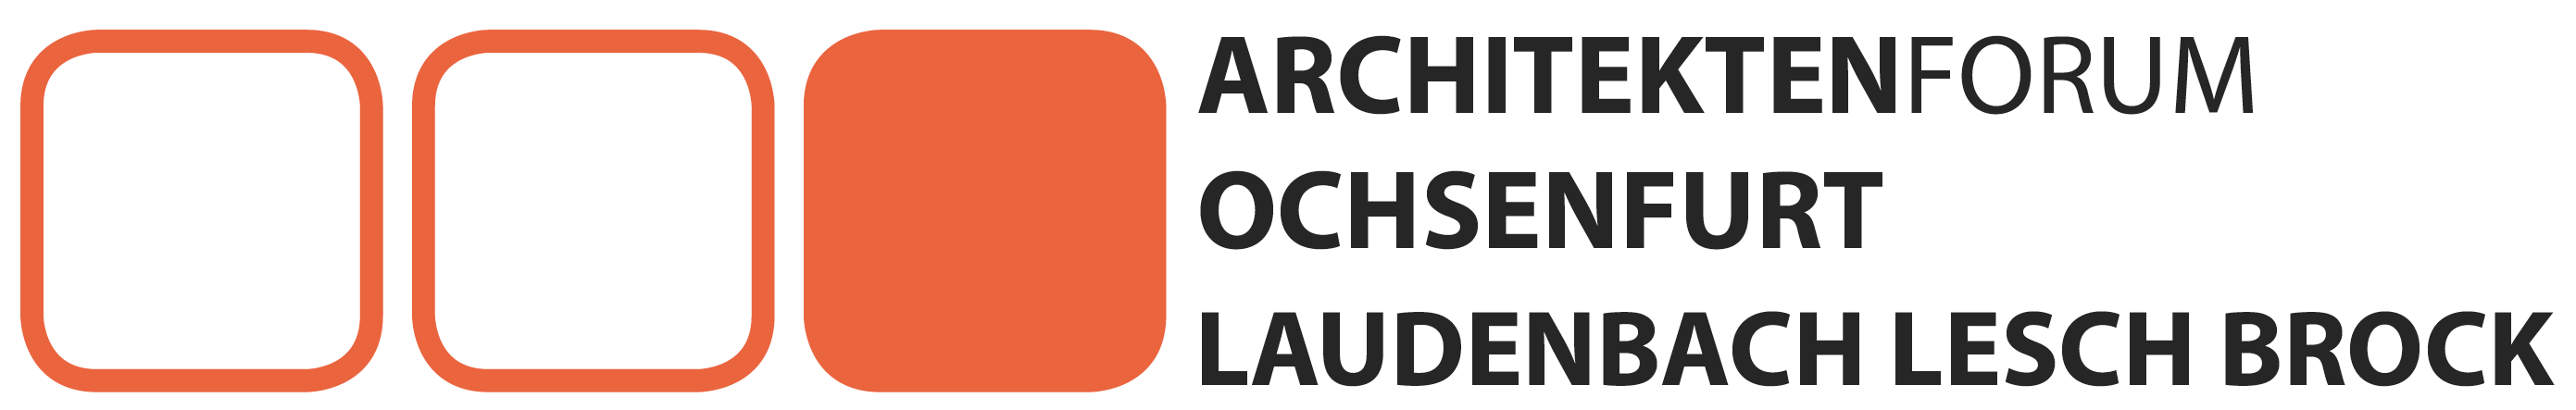 Architektenforum Ochsenfurt